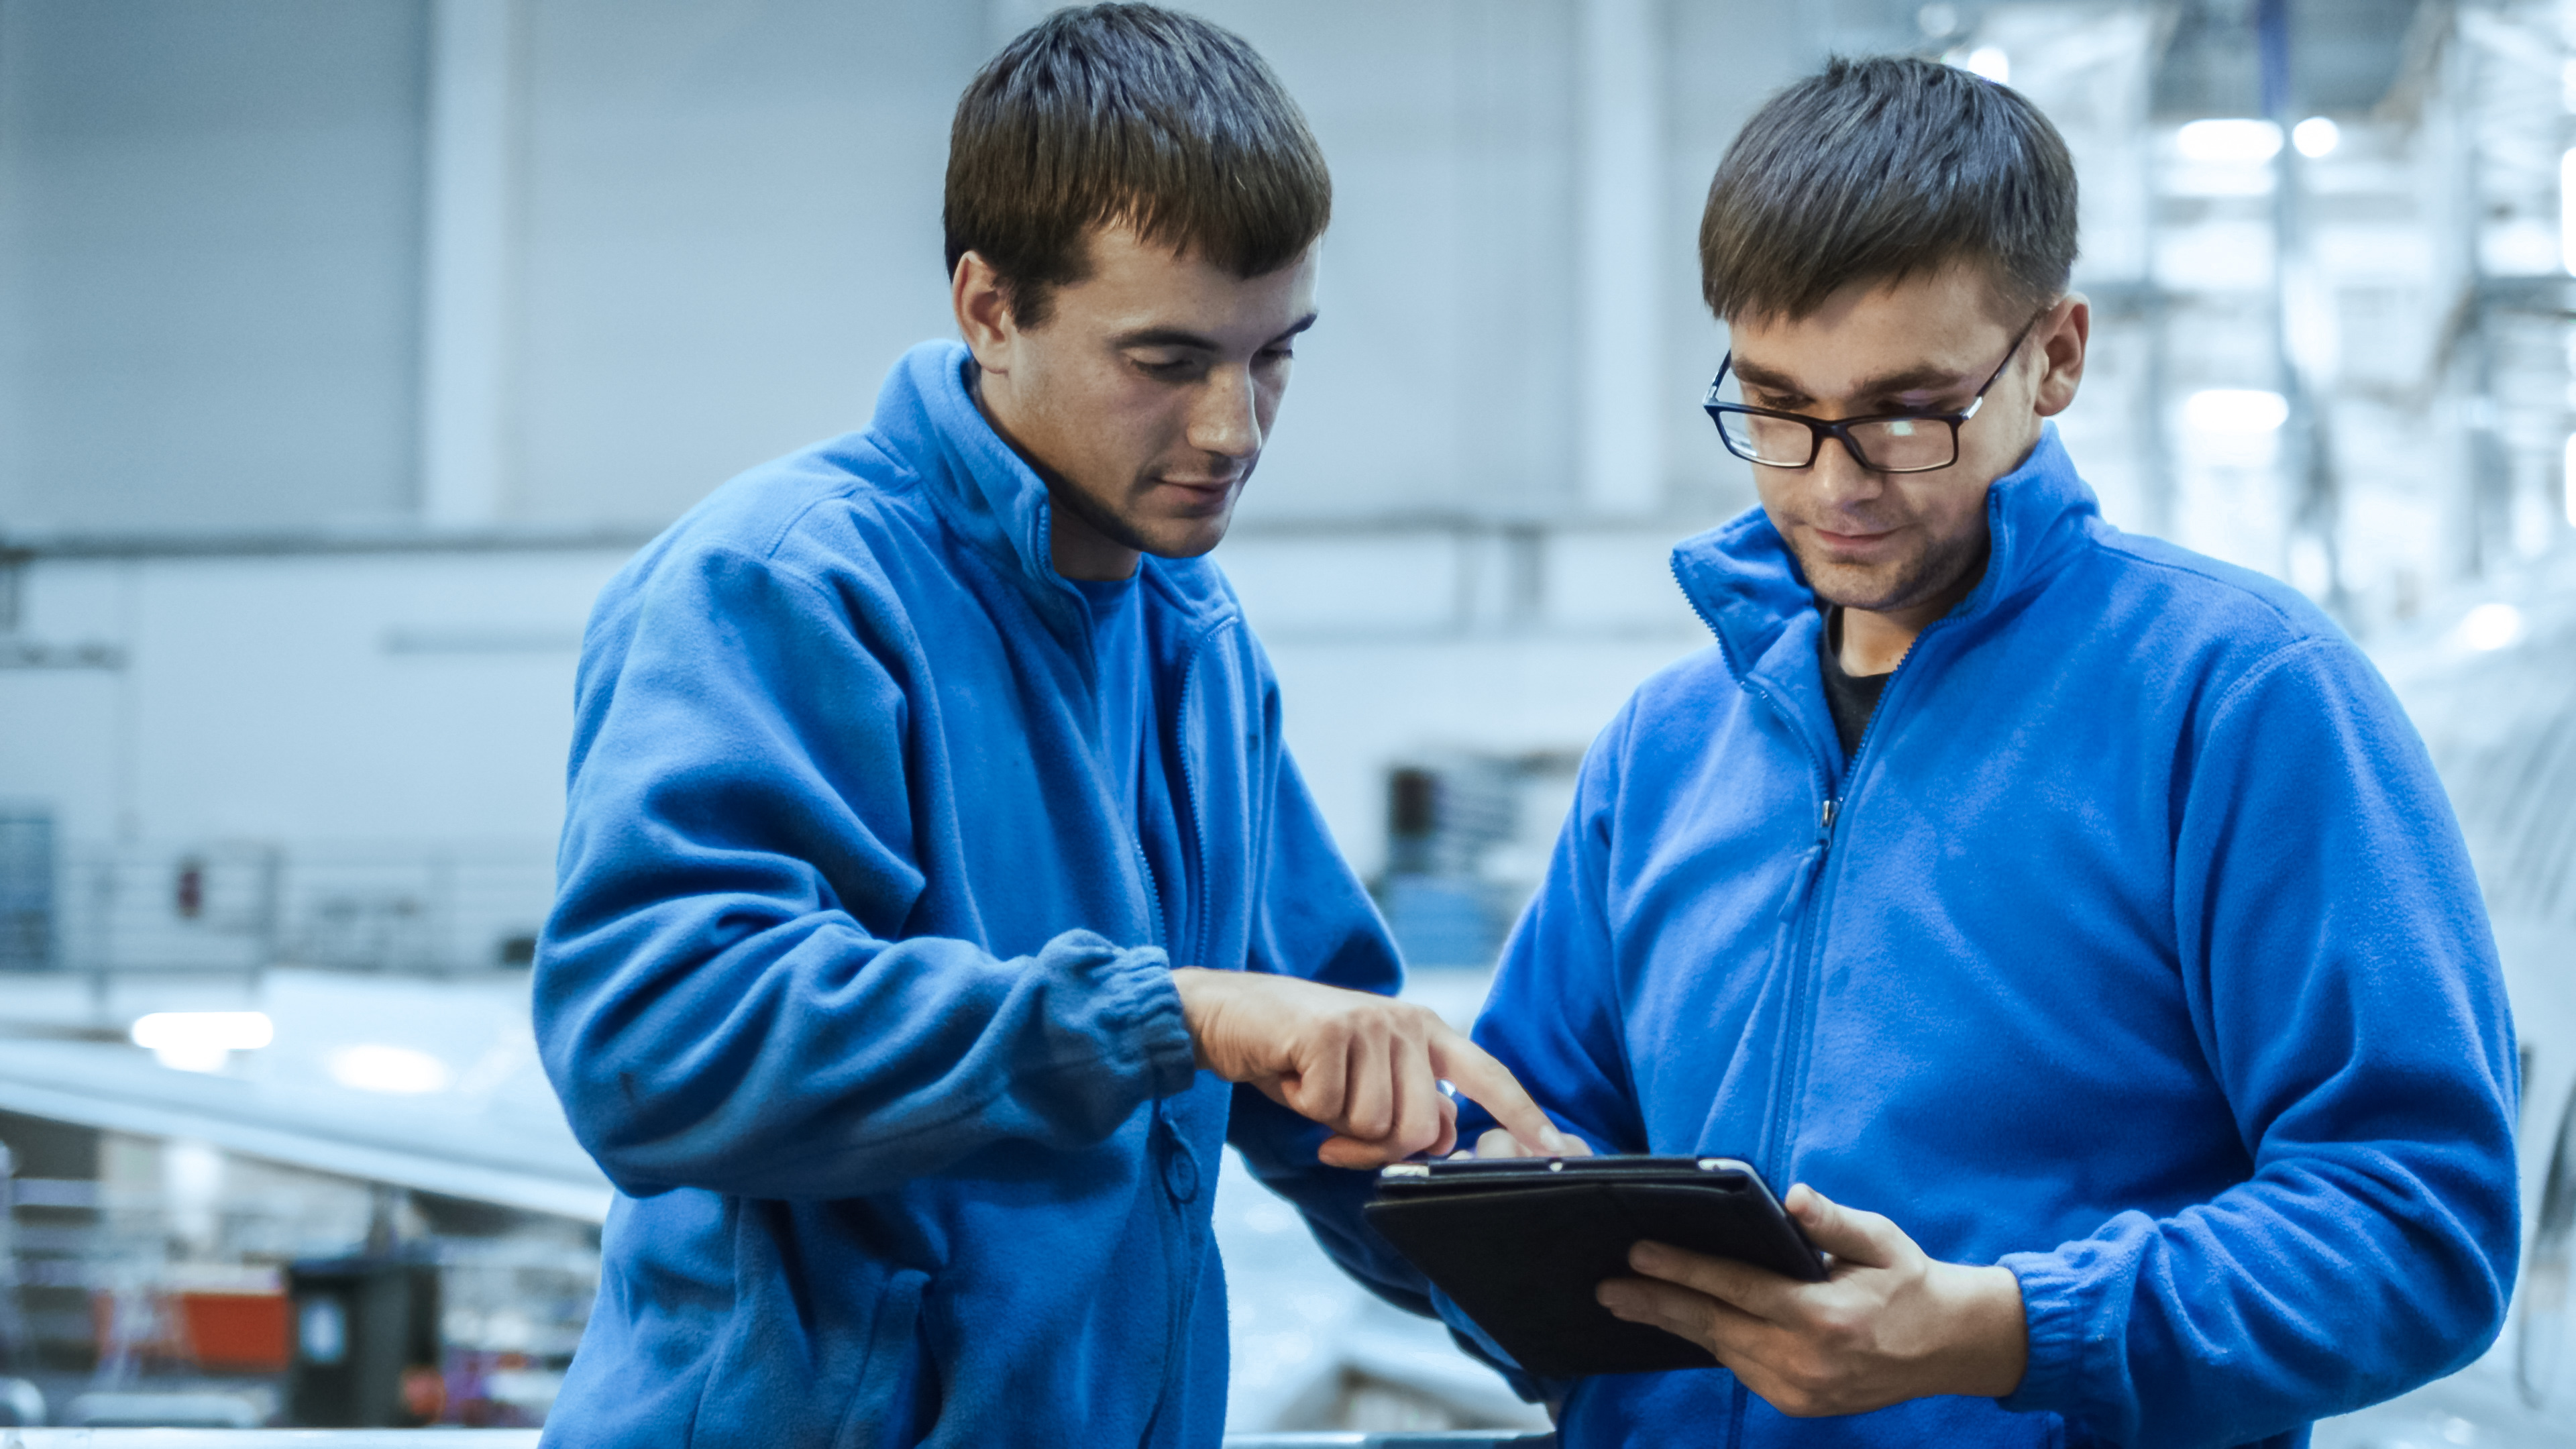 Two Men in Blue Reviewing Paperwork on a Tablet